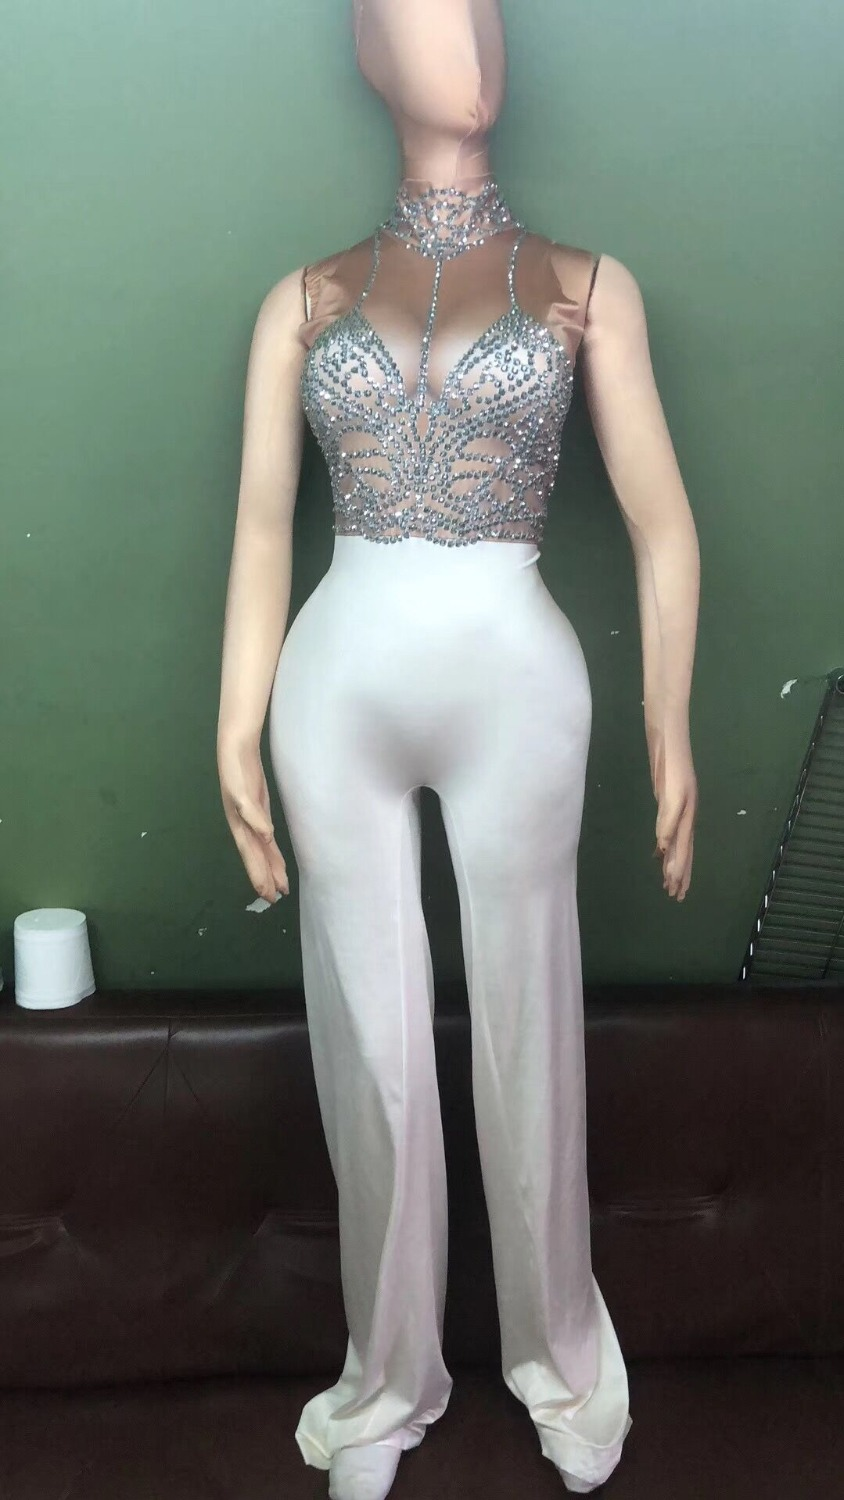 New Sexy White Big Leggings Bodysuit Costume Women s Bright Outfit Nightclub Party Wear Female Singer